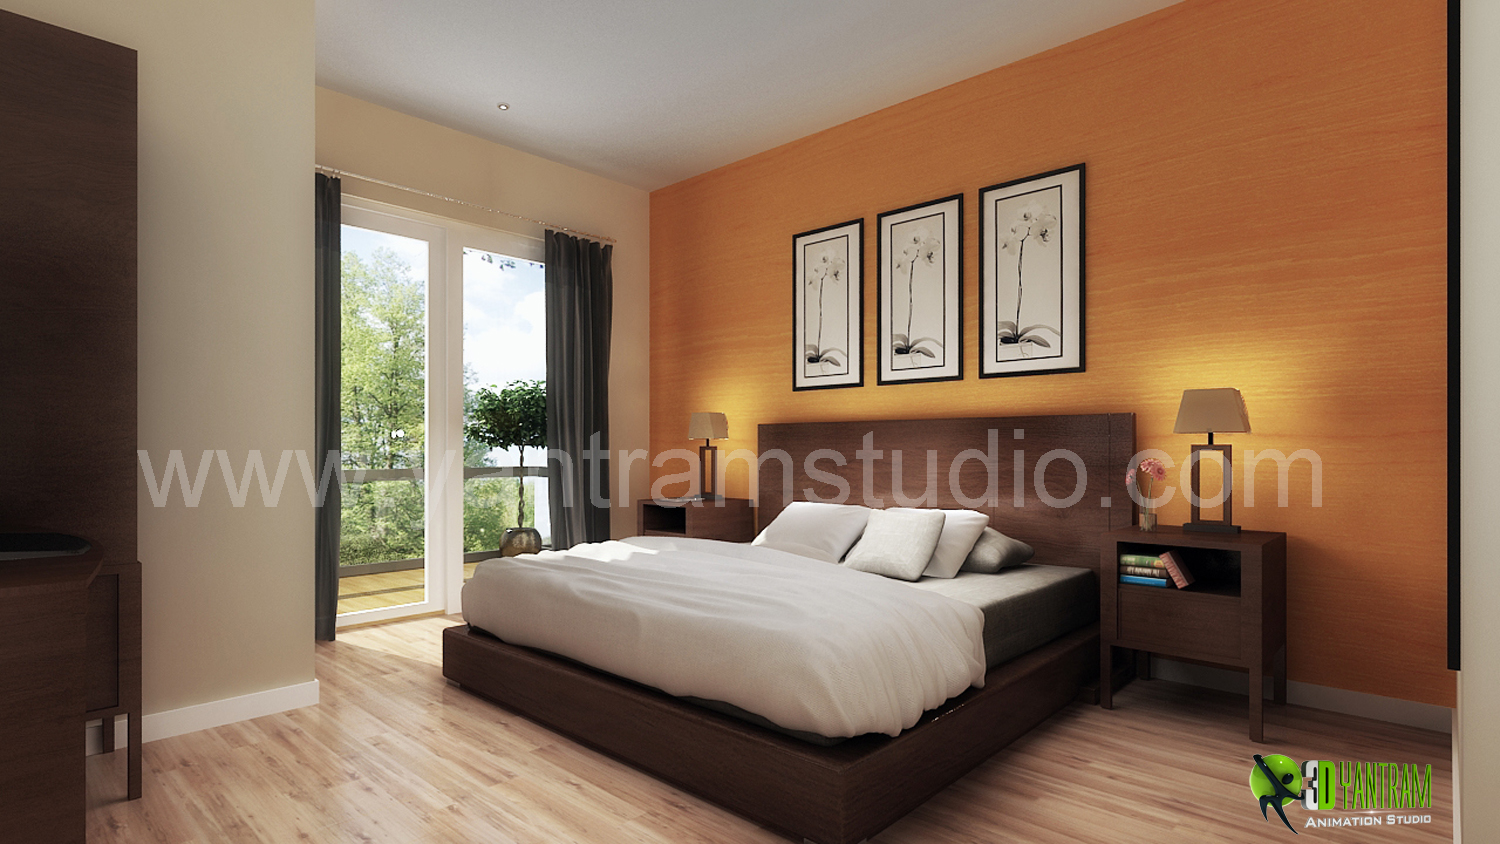 3d, animation, bathroom, bedroom, cgi, design, interior, kitchen, living room, office, rendering, store